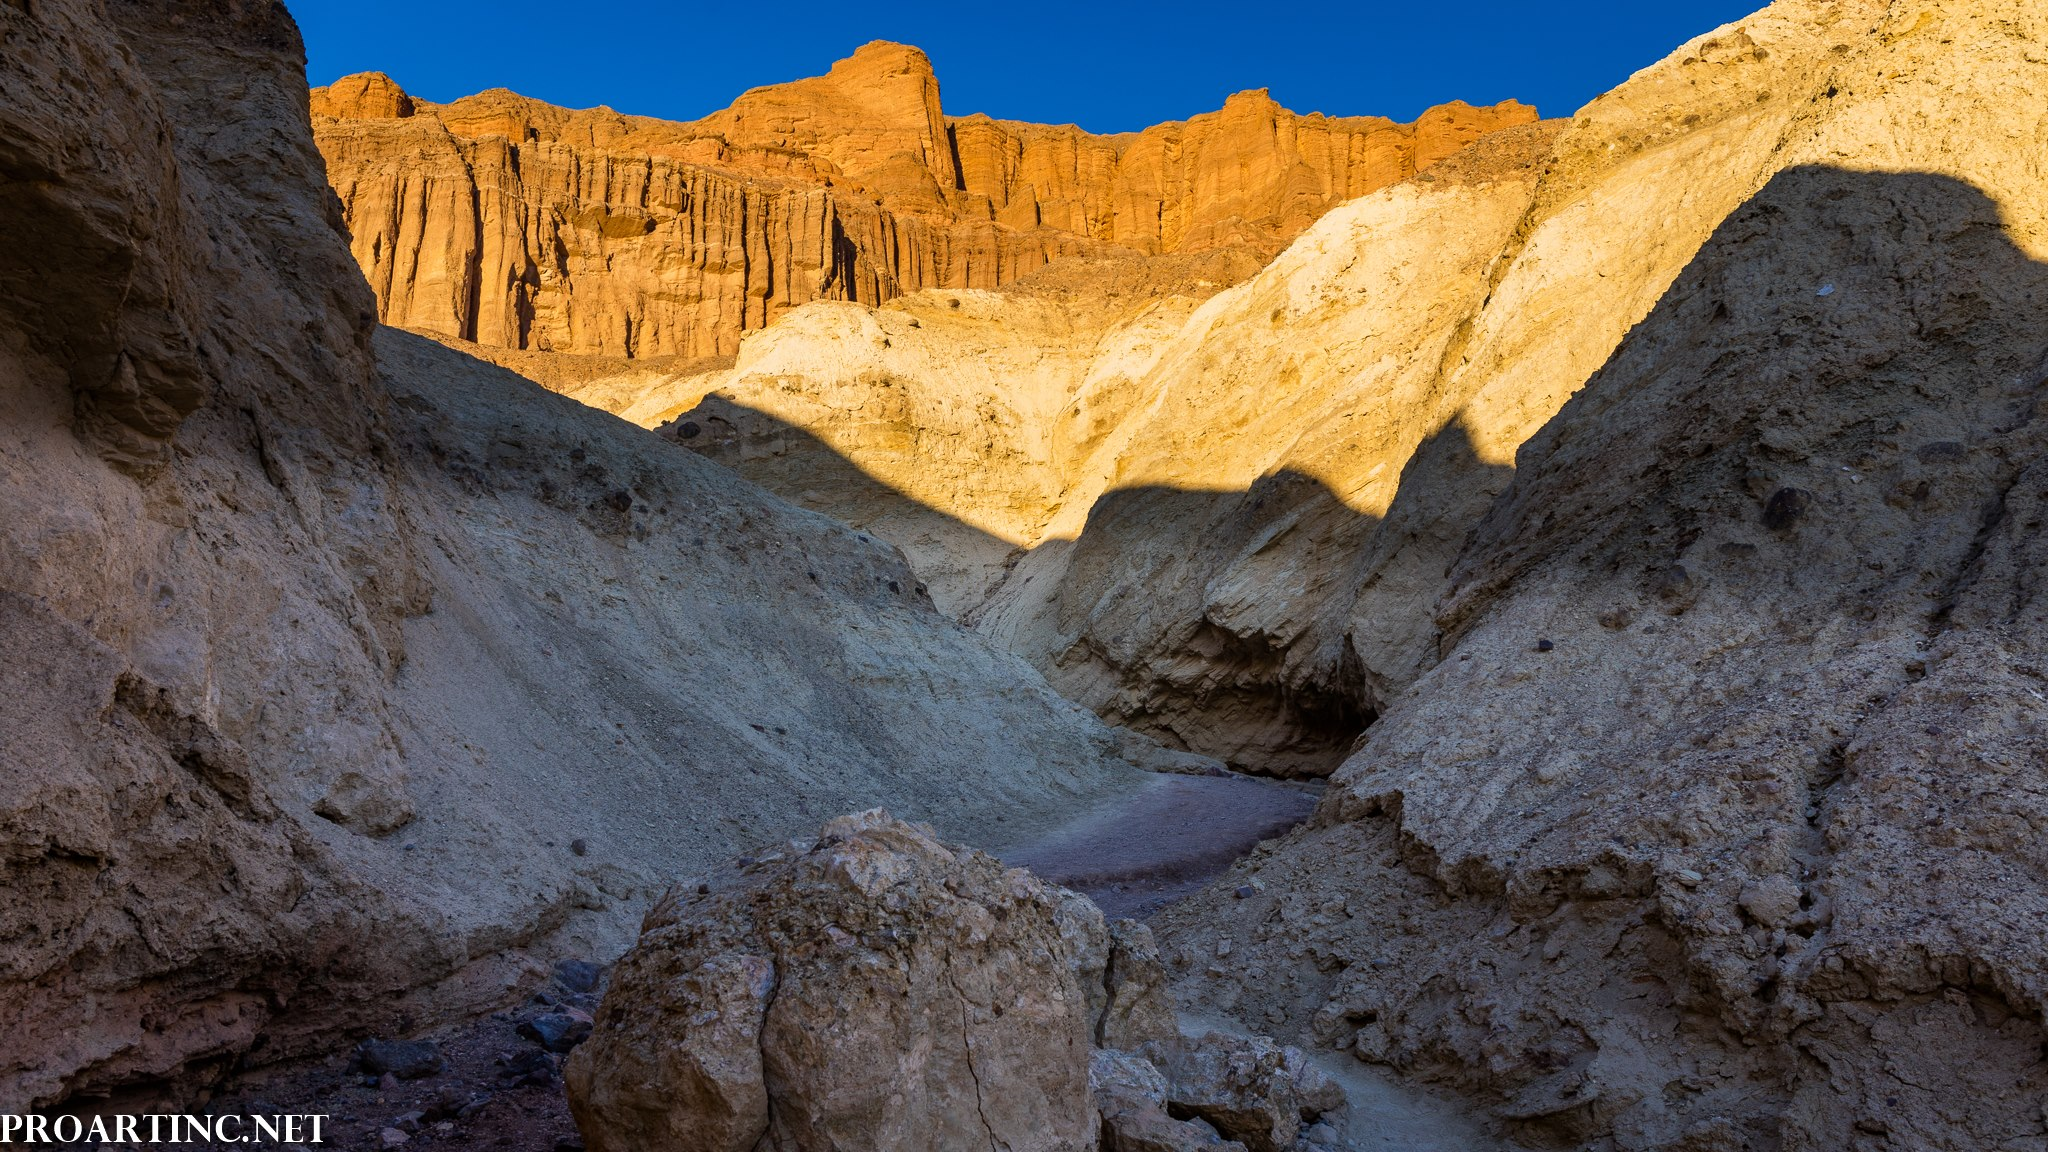 Golden Canyon Trail at Death Valley National Park